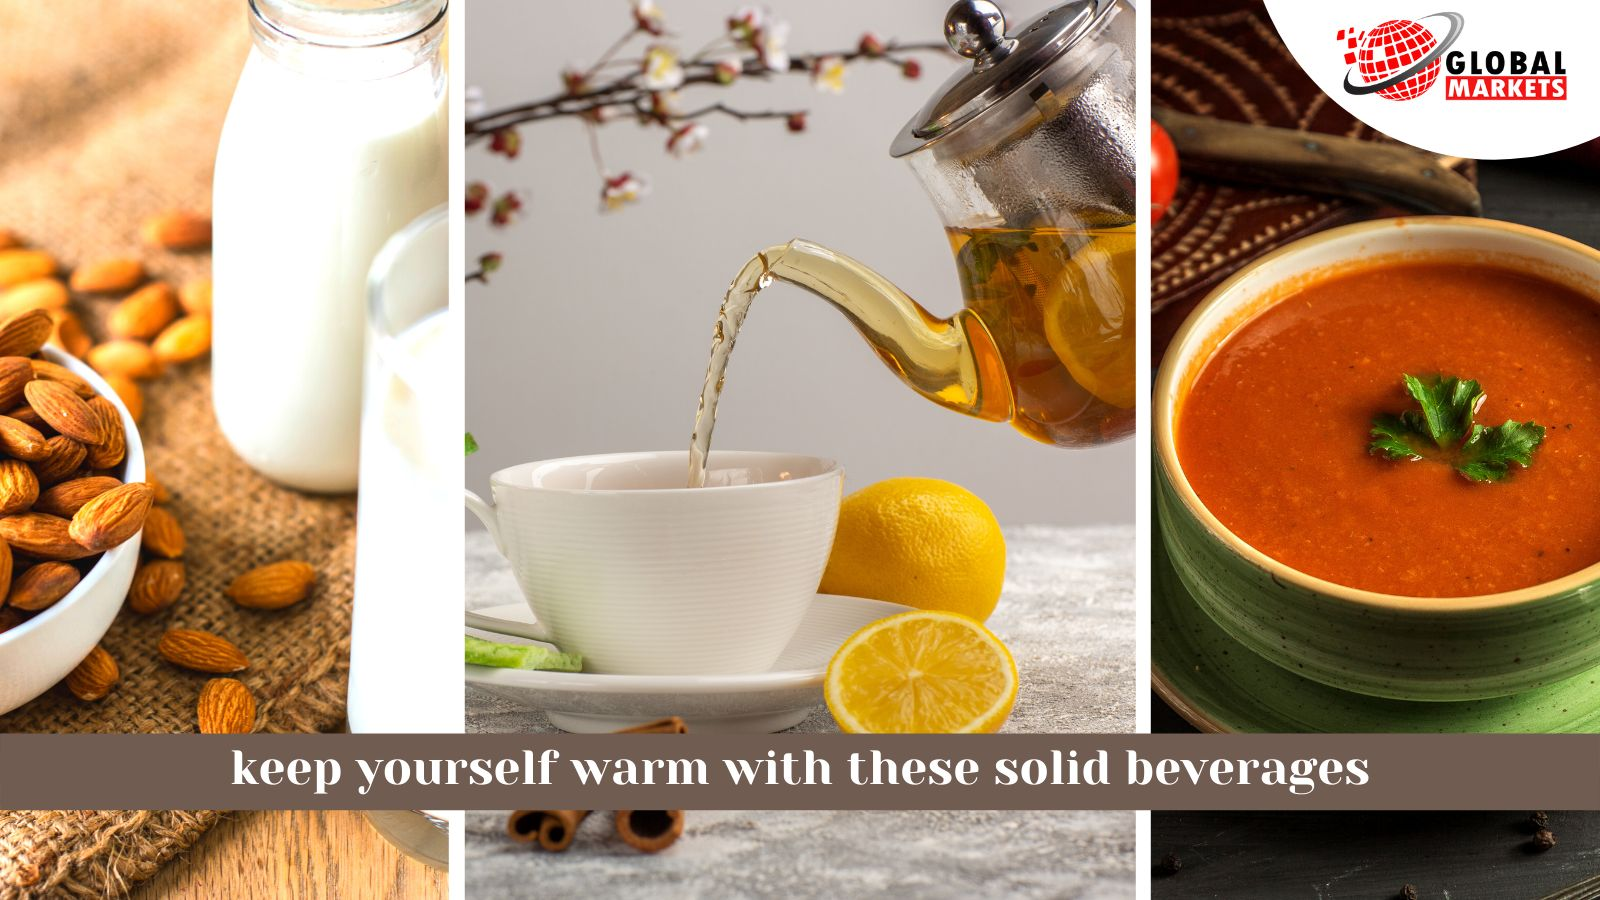 This winter, keep yourself warm with these solid beverages